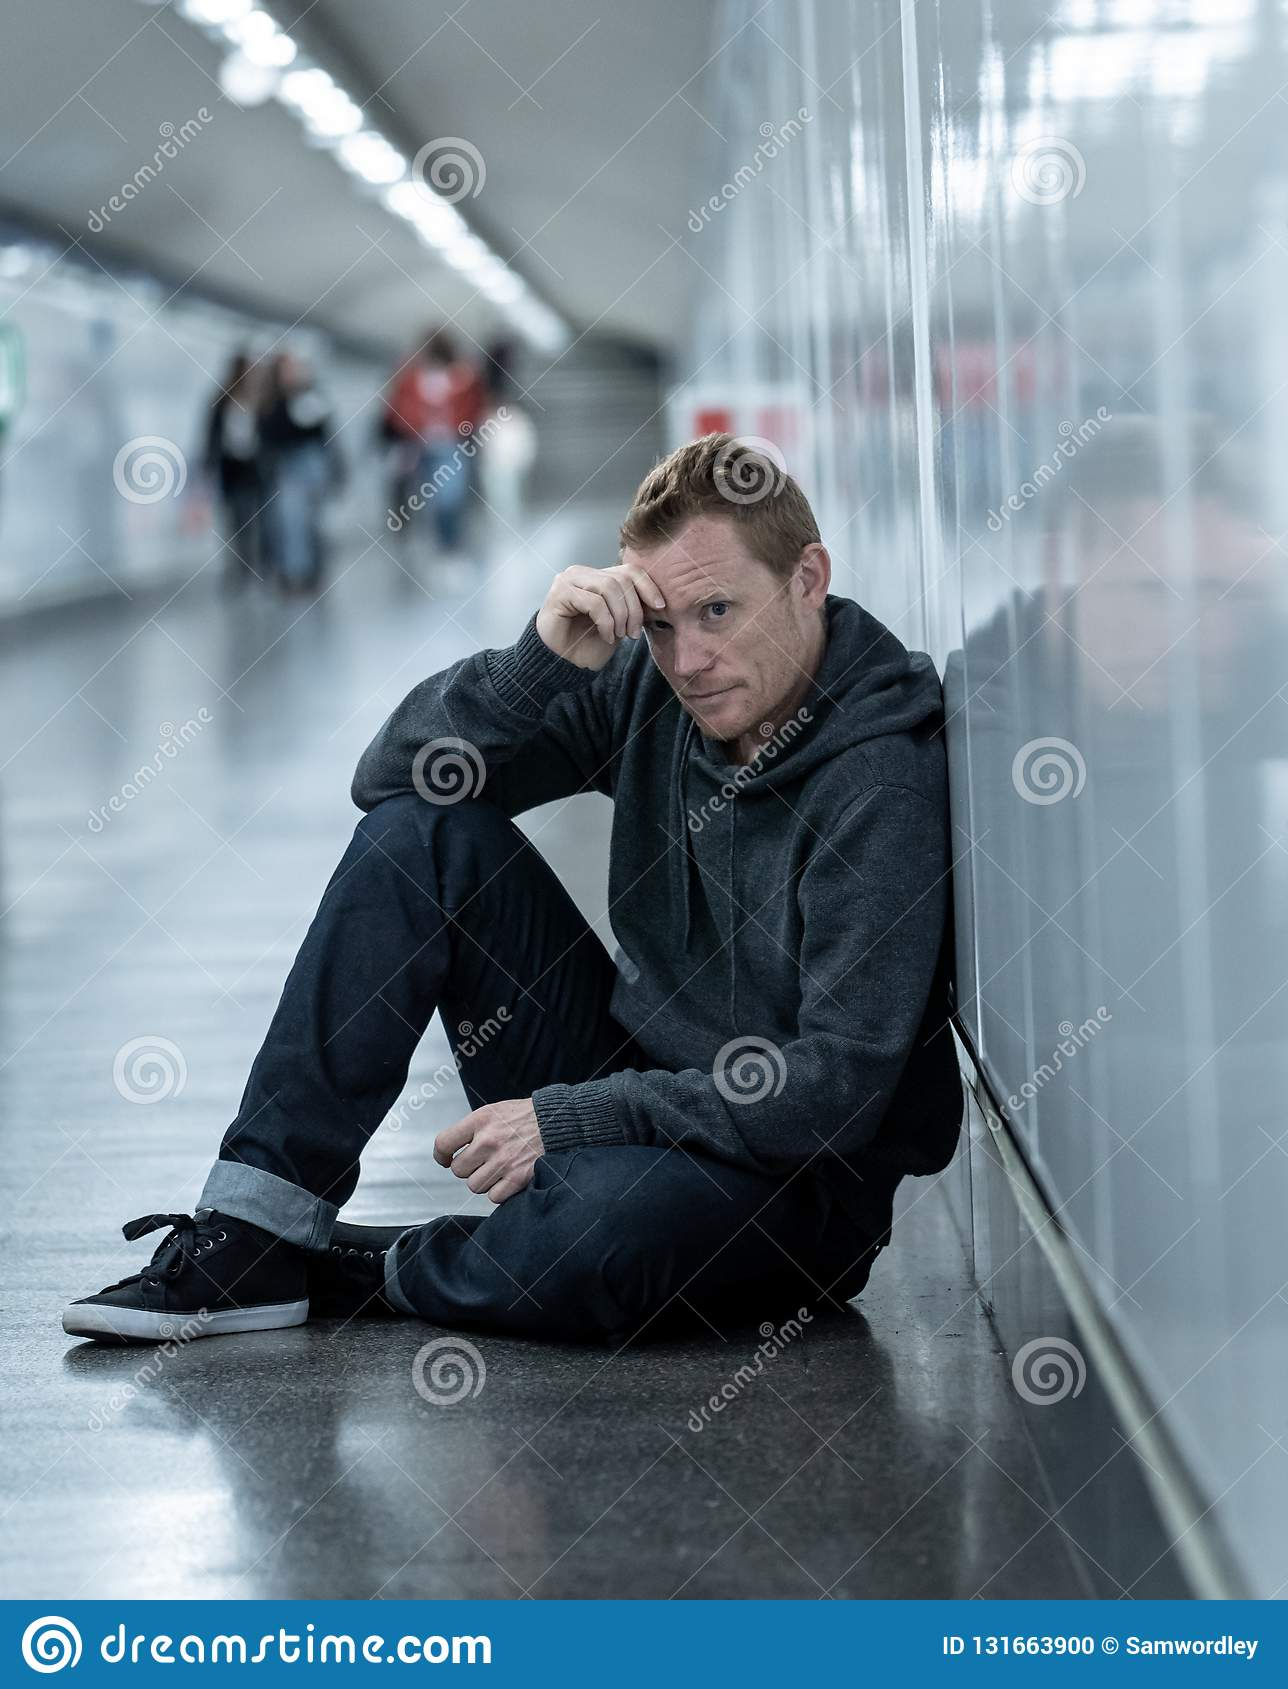 Miserable Jobless Young Man Crying Drug Addict Homeless In ...